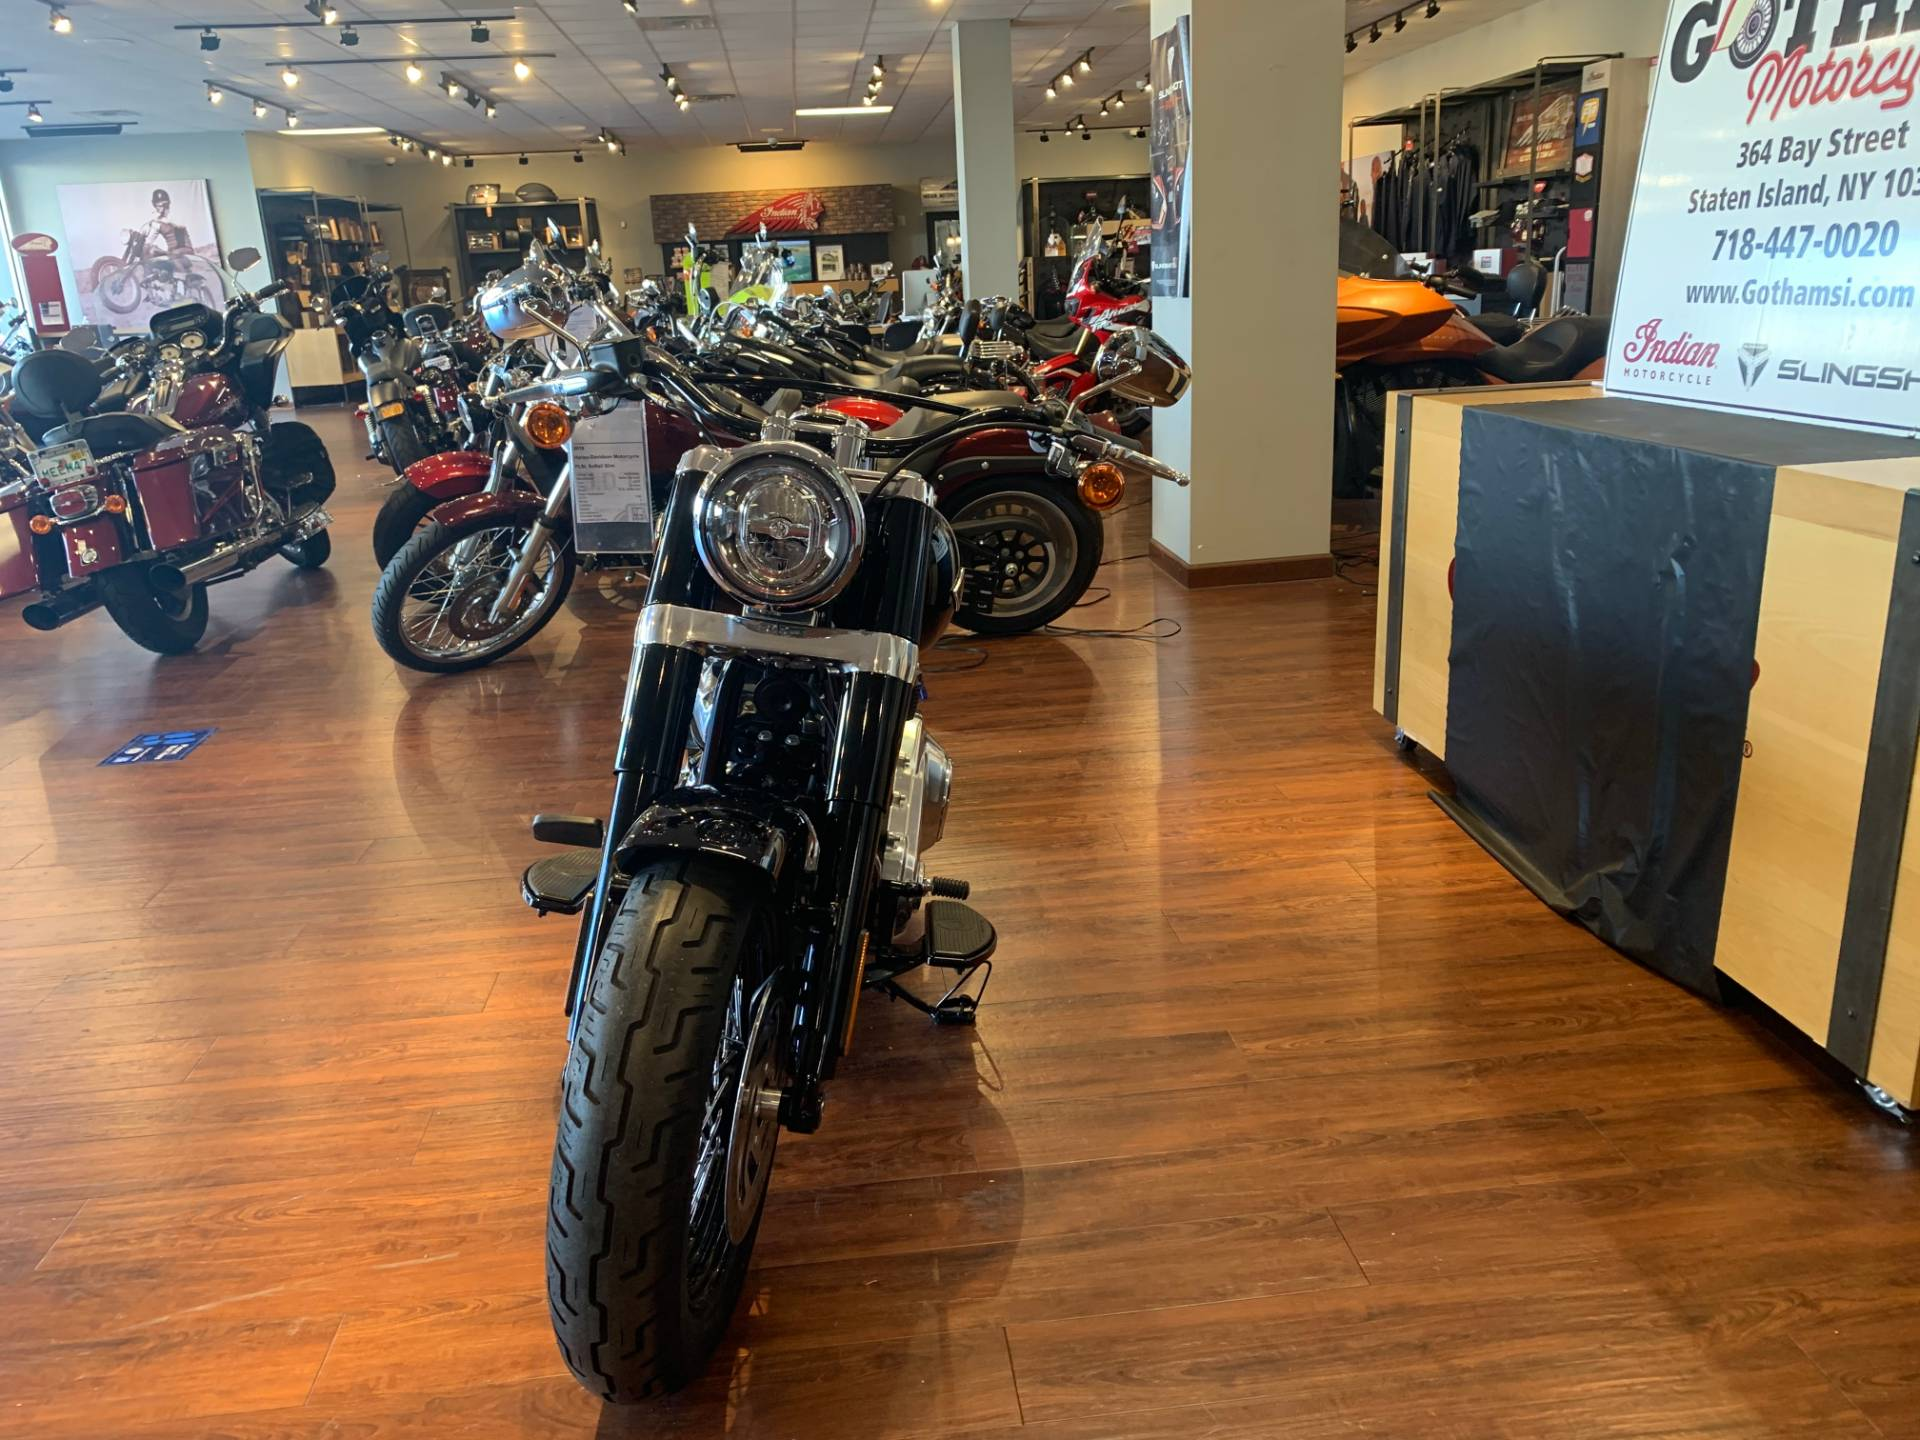 2019 Harley-Davidson Softail Slim® in Staten Island, New York - Photo 2